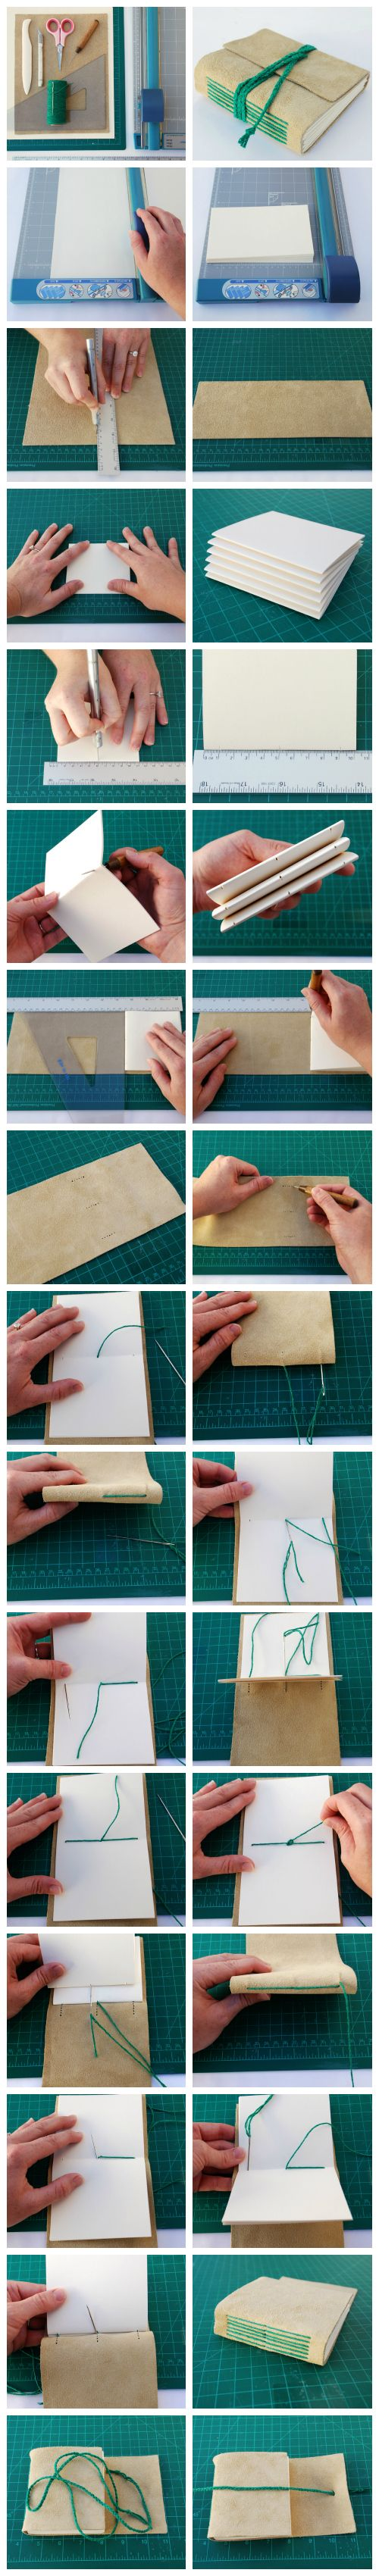 Tutorial How to make a long-stitch bound journal.  #Bookbinding